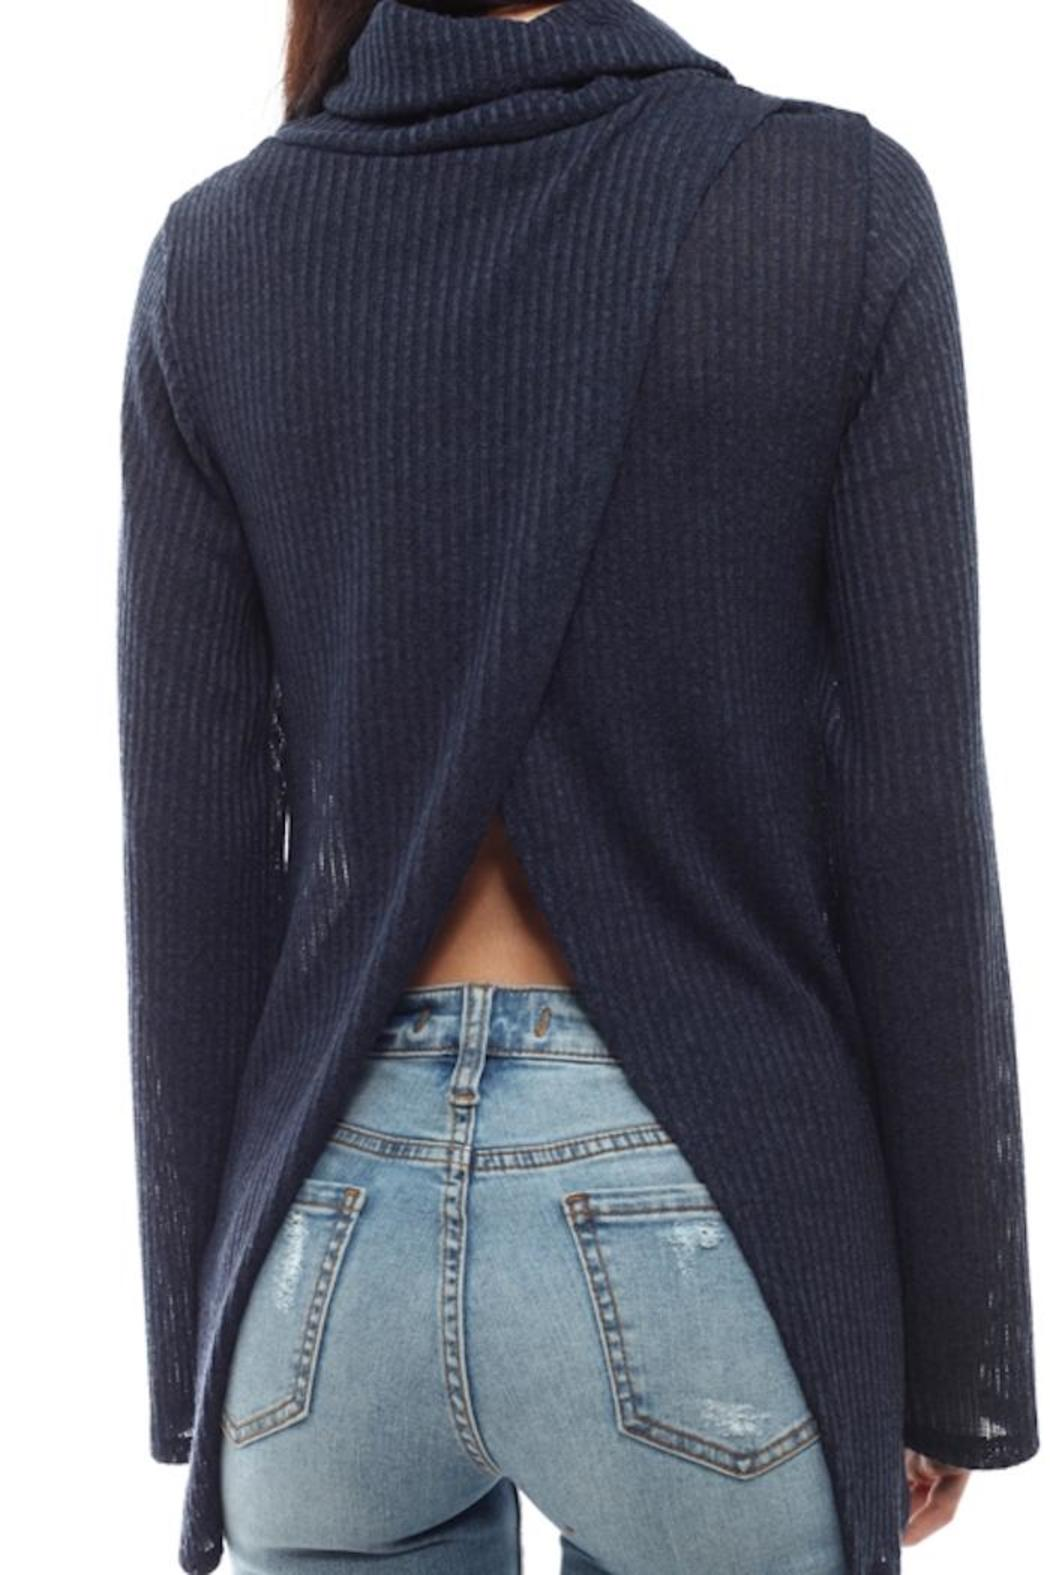 michele split back sweater from louisiana by michele shoptiques